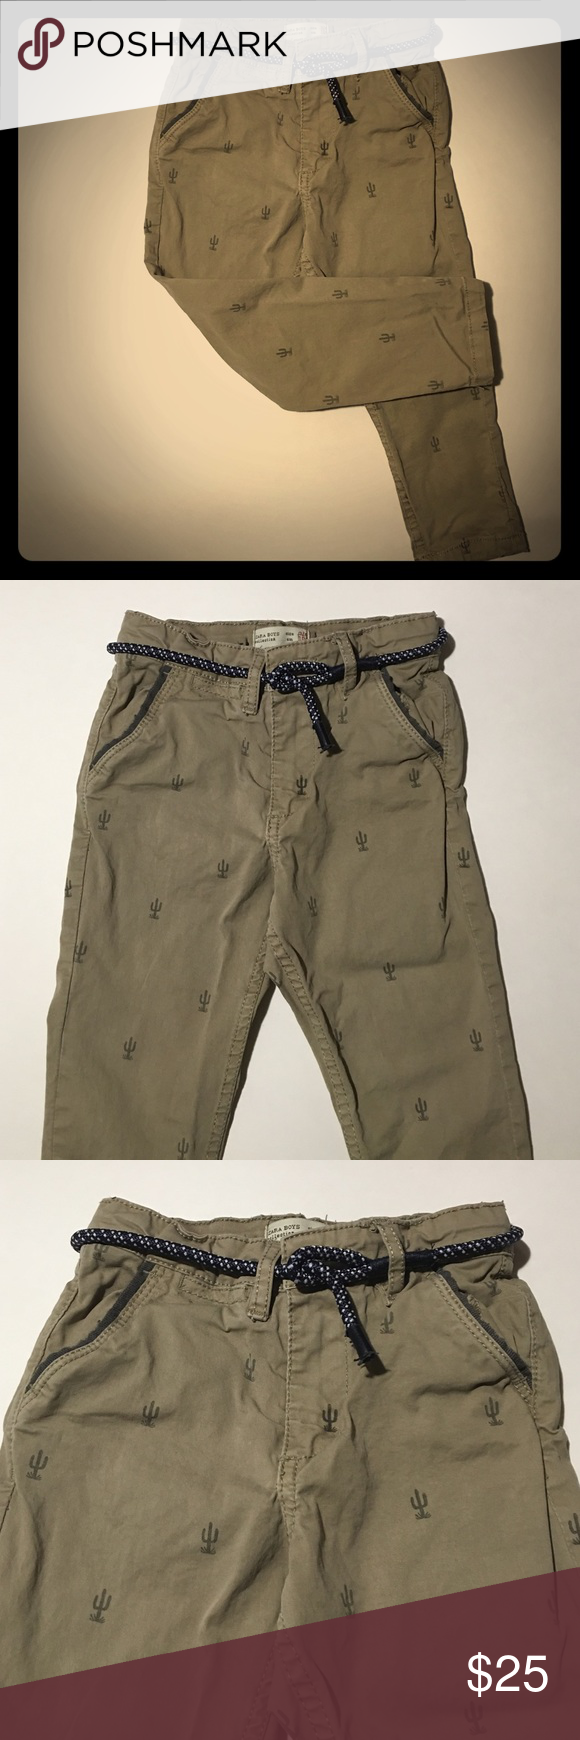 Zara boys trousers w/ belt Zara toddler boy trousers in size 3/4T. Has adjustable elastic band inside, and comes with the rope belt you see in pics. Worn twice. Zara Bottoms Casual